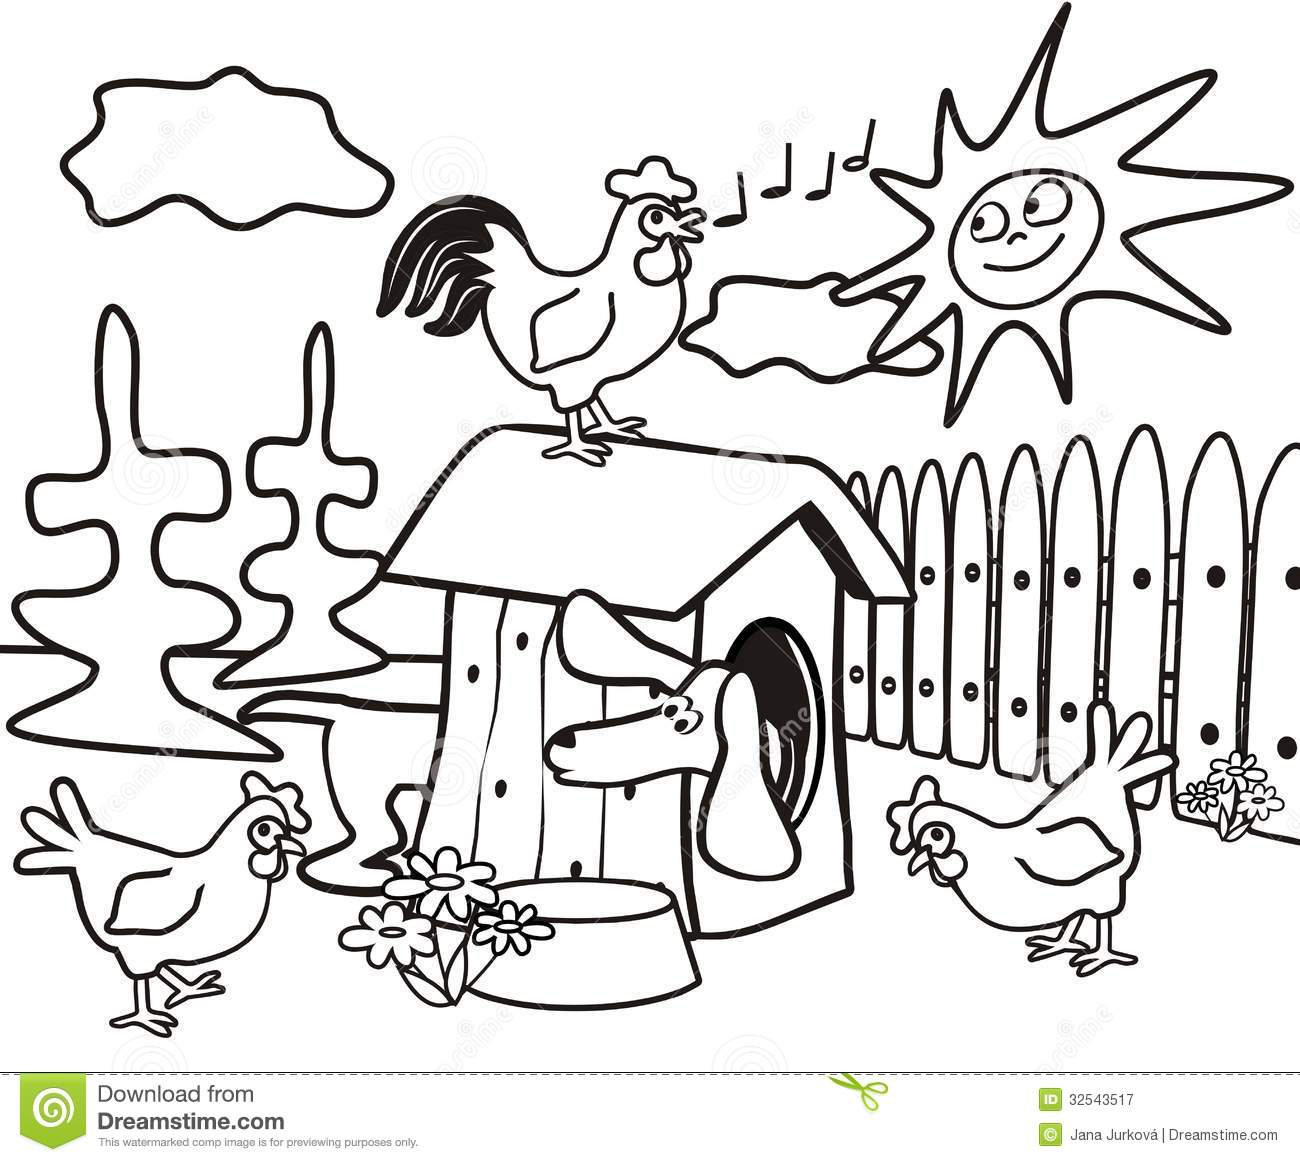 Sure Fire Free Colouring Pictures For Children  5106